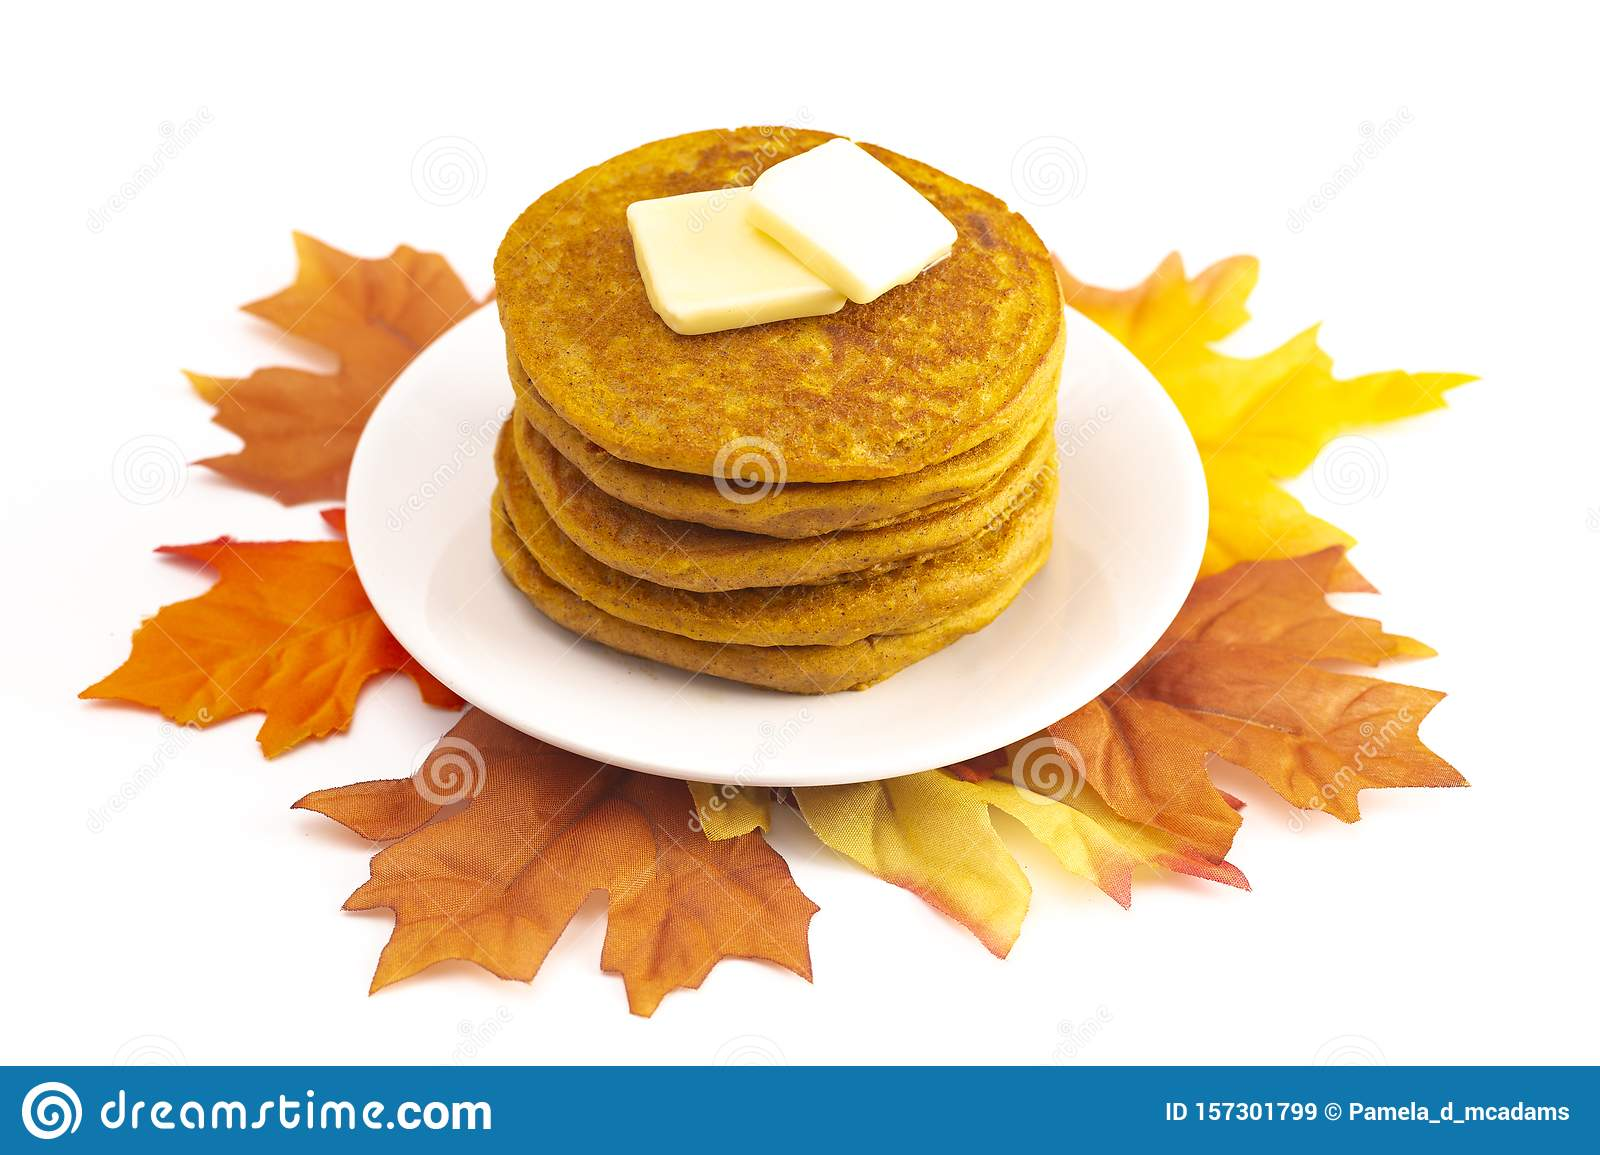 Stack of Pumpkin Spice Flavored Pancakes Isolated on a White Background